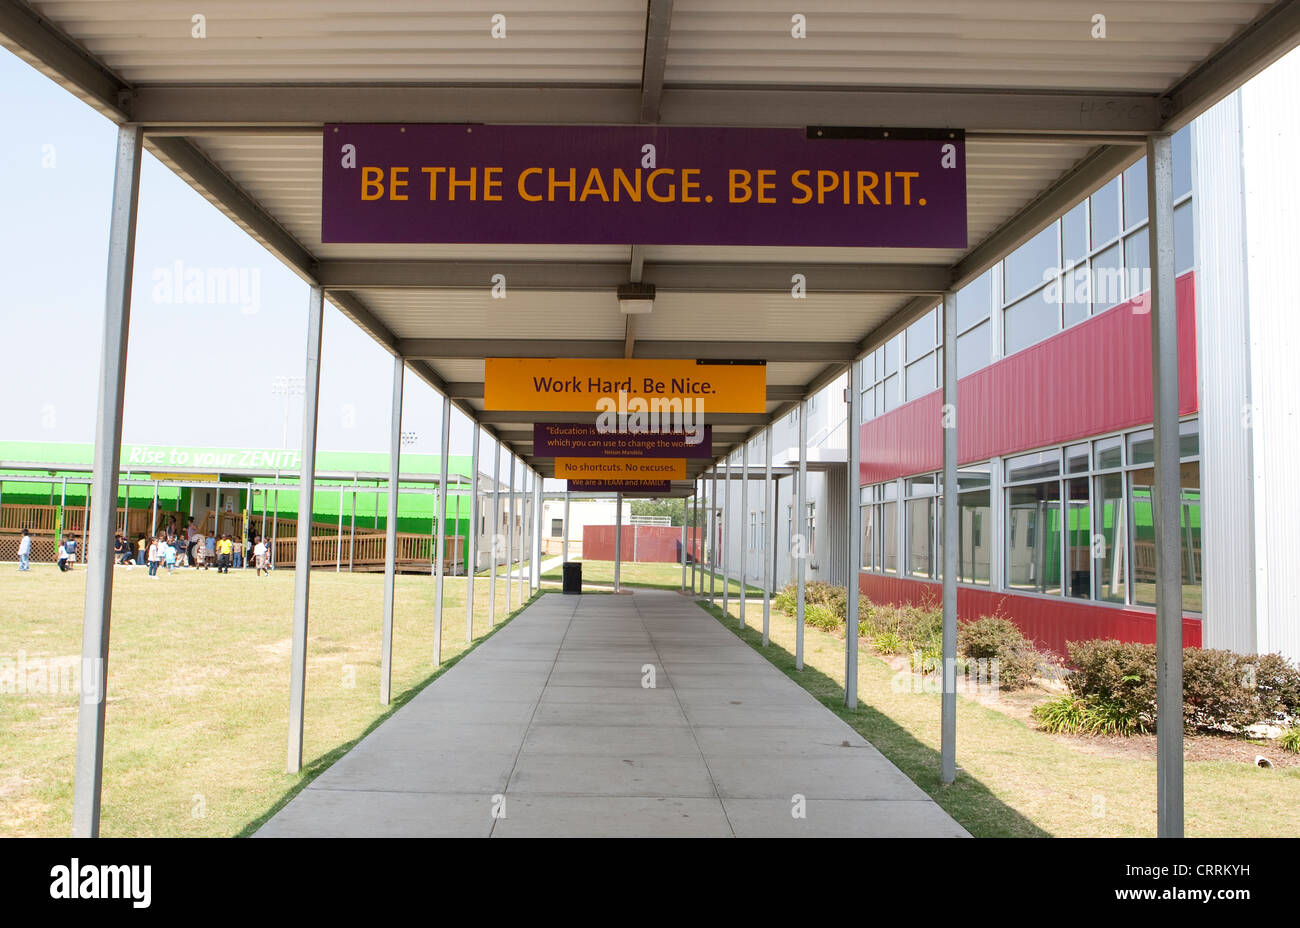 Signs with positive phrases on campus of KIPP Sunnyside High school, a public charter school in Houston, Texas - Stock Image